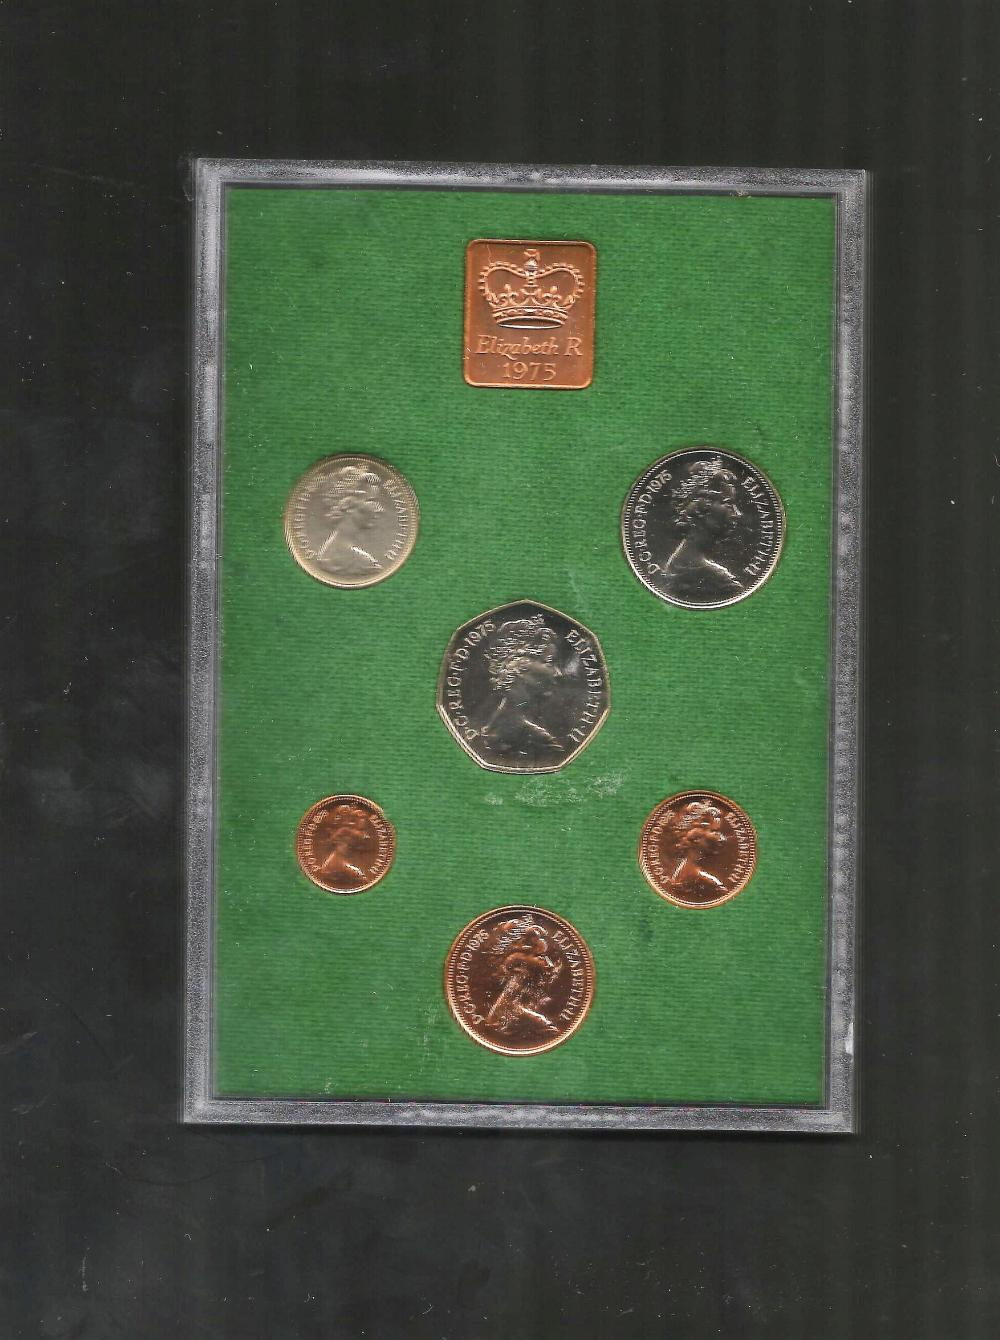 UK GB 1975 Proof coin set, mounted in a plastic display case, with a protective outer case. The